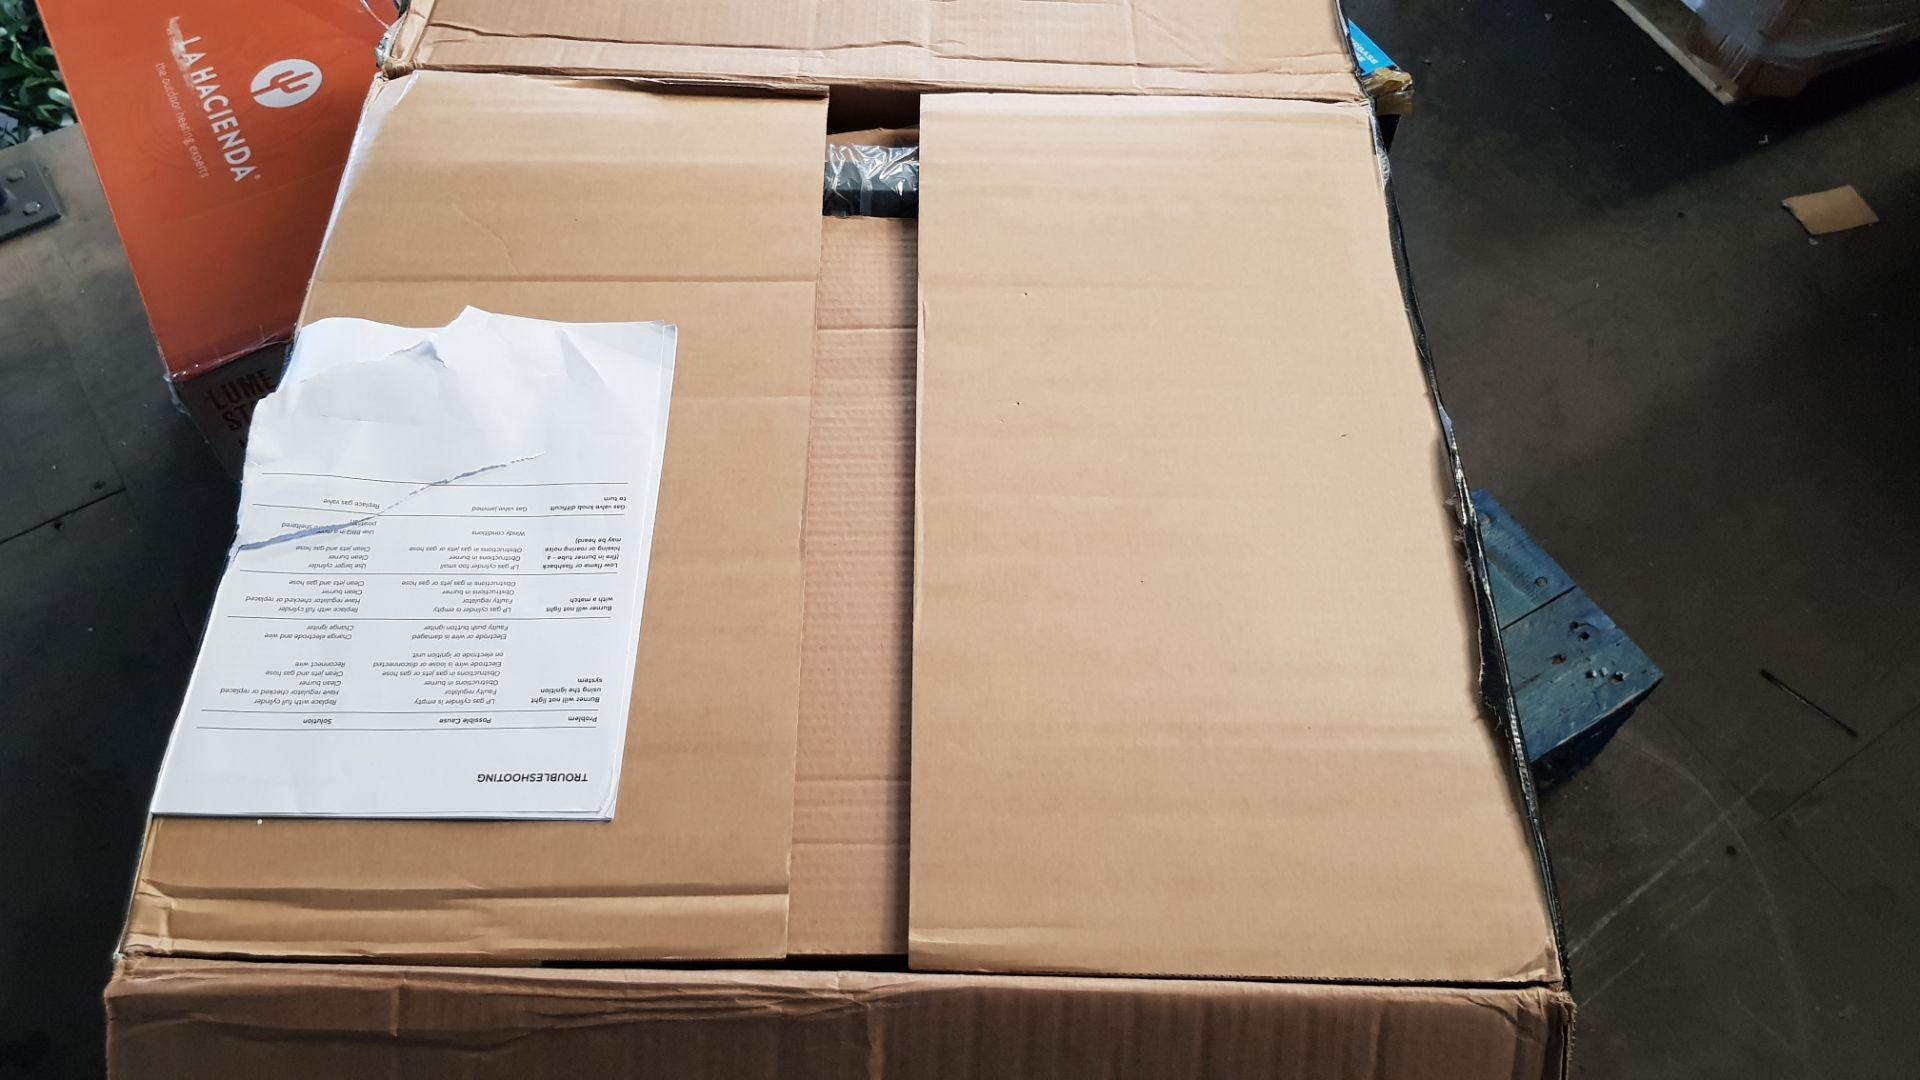 (P8) 1x Texas Nimbus 2 Burner Gas BBQ RRP £80. Contents Appear As New – Unused & Not Previously Re - Image 4 of 6